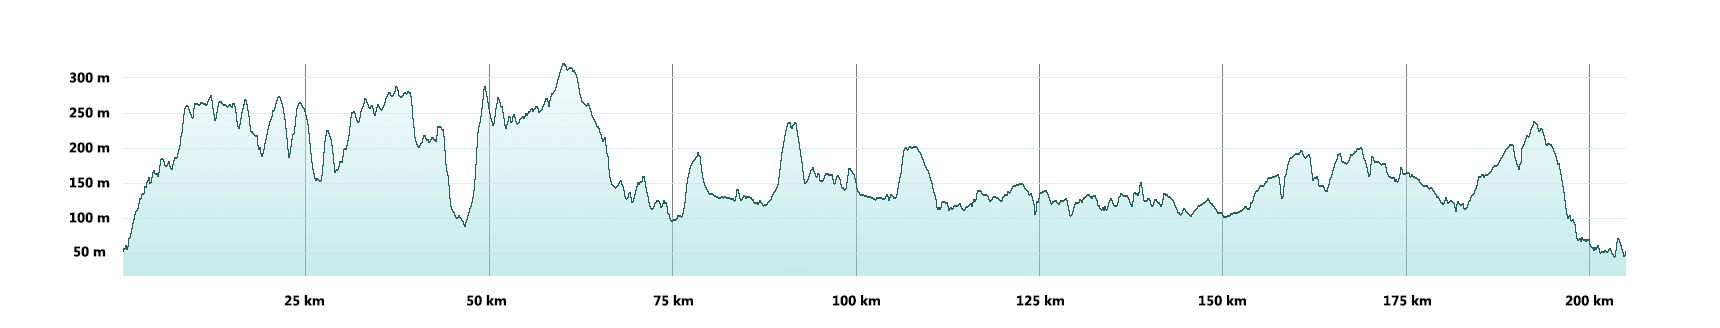 Around The Cotswolds Route Profile